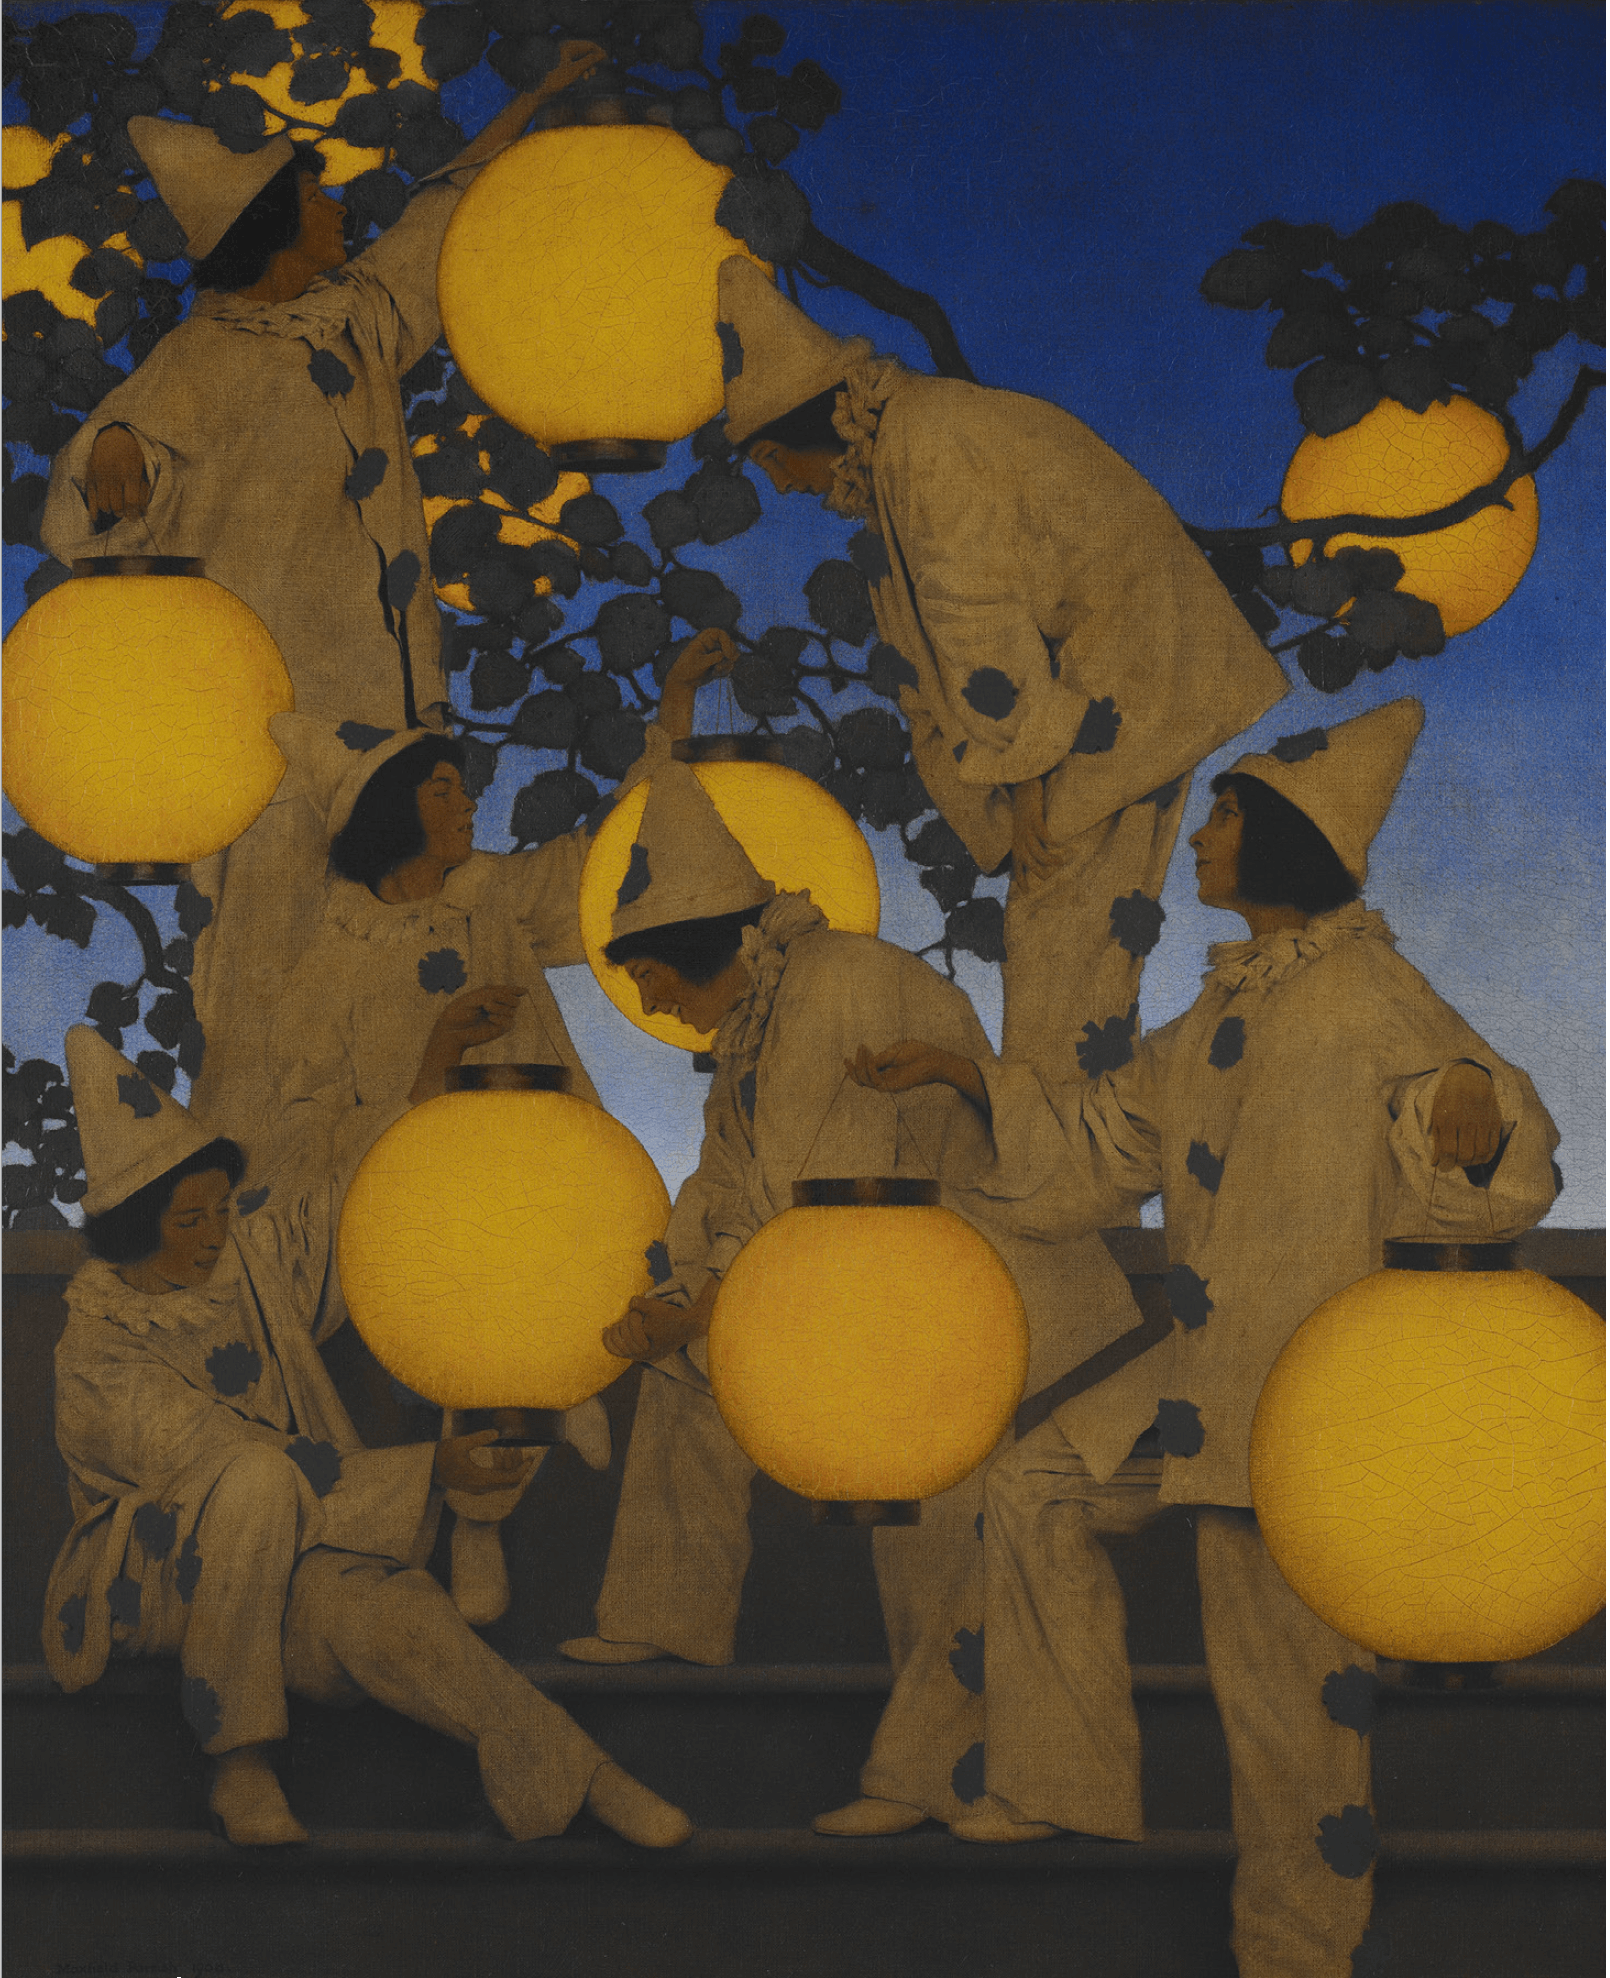 "Maxfield Parrish (American, 1870-1966), The Lantern Bearers, 1908, oil on canvas, 40"" x 32"" (Crystal Bridges Museum of American Art, Bentonville, Arkansas; Photography by Dwight Primiano)."